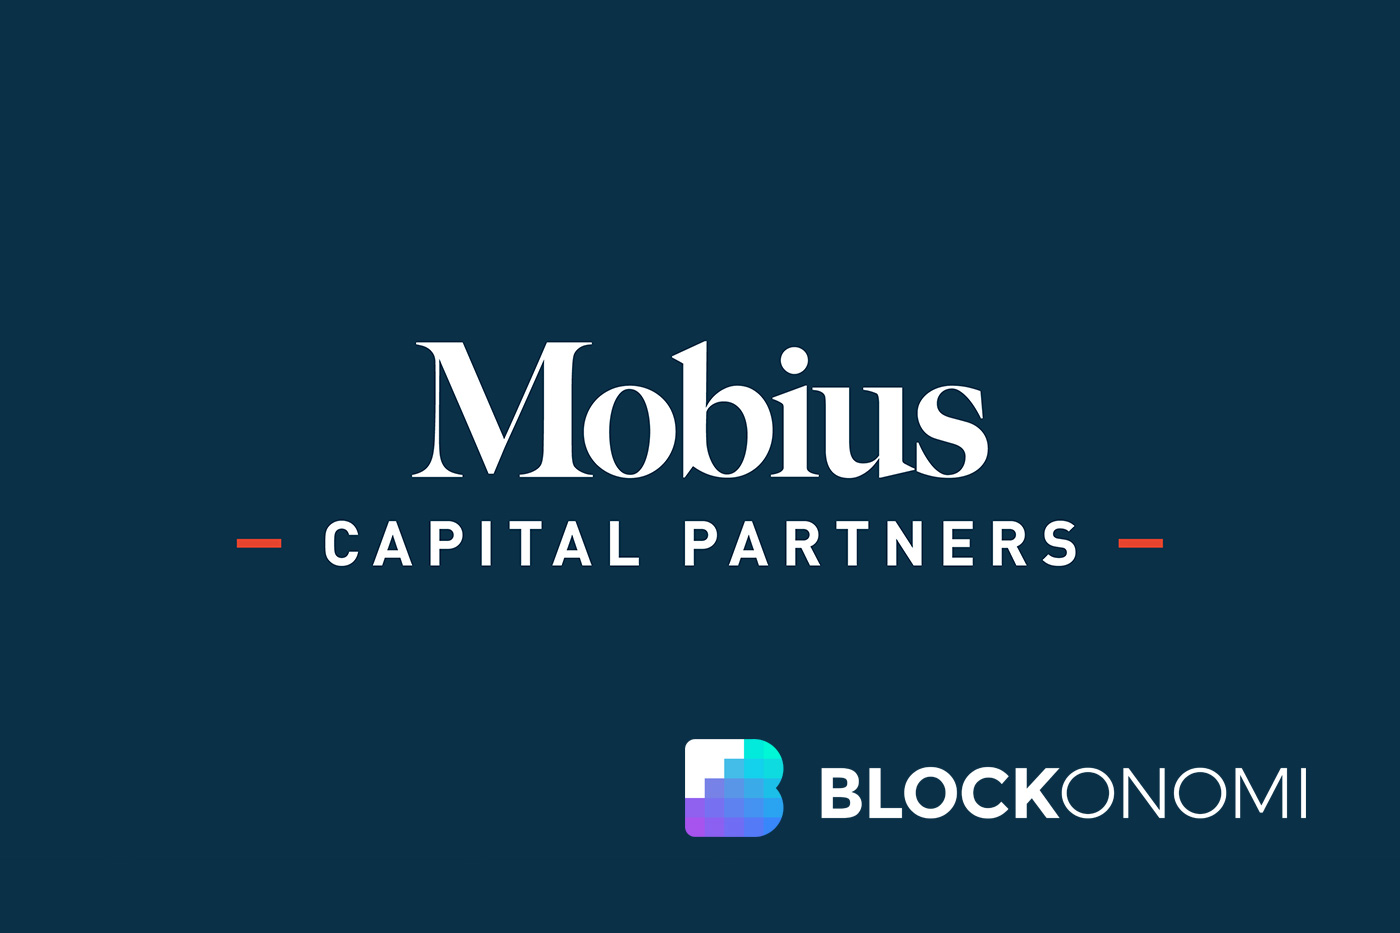 mobius cryptocurrency price